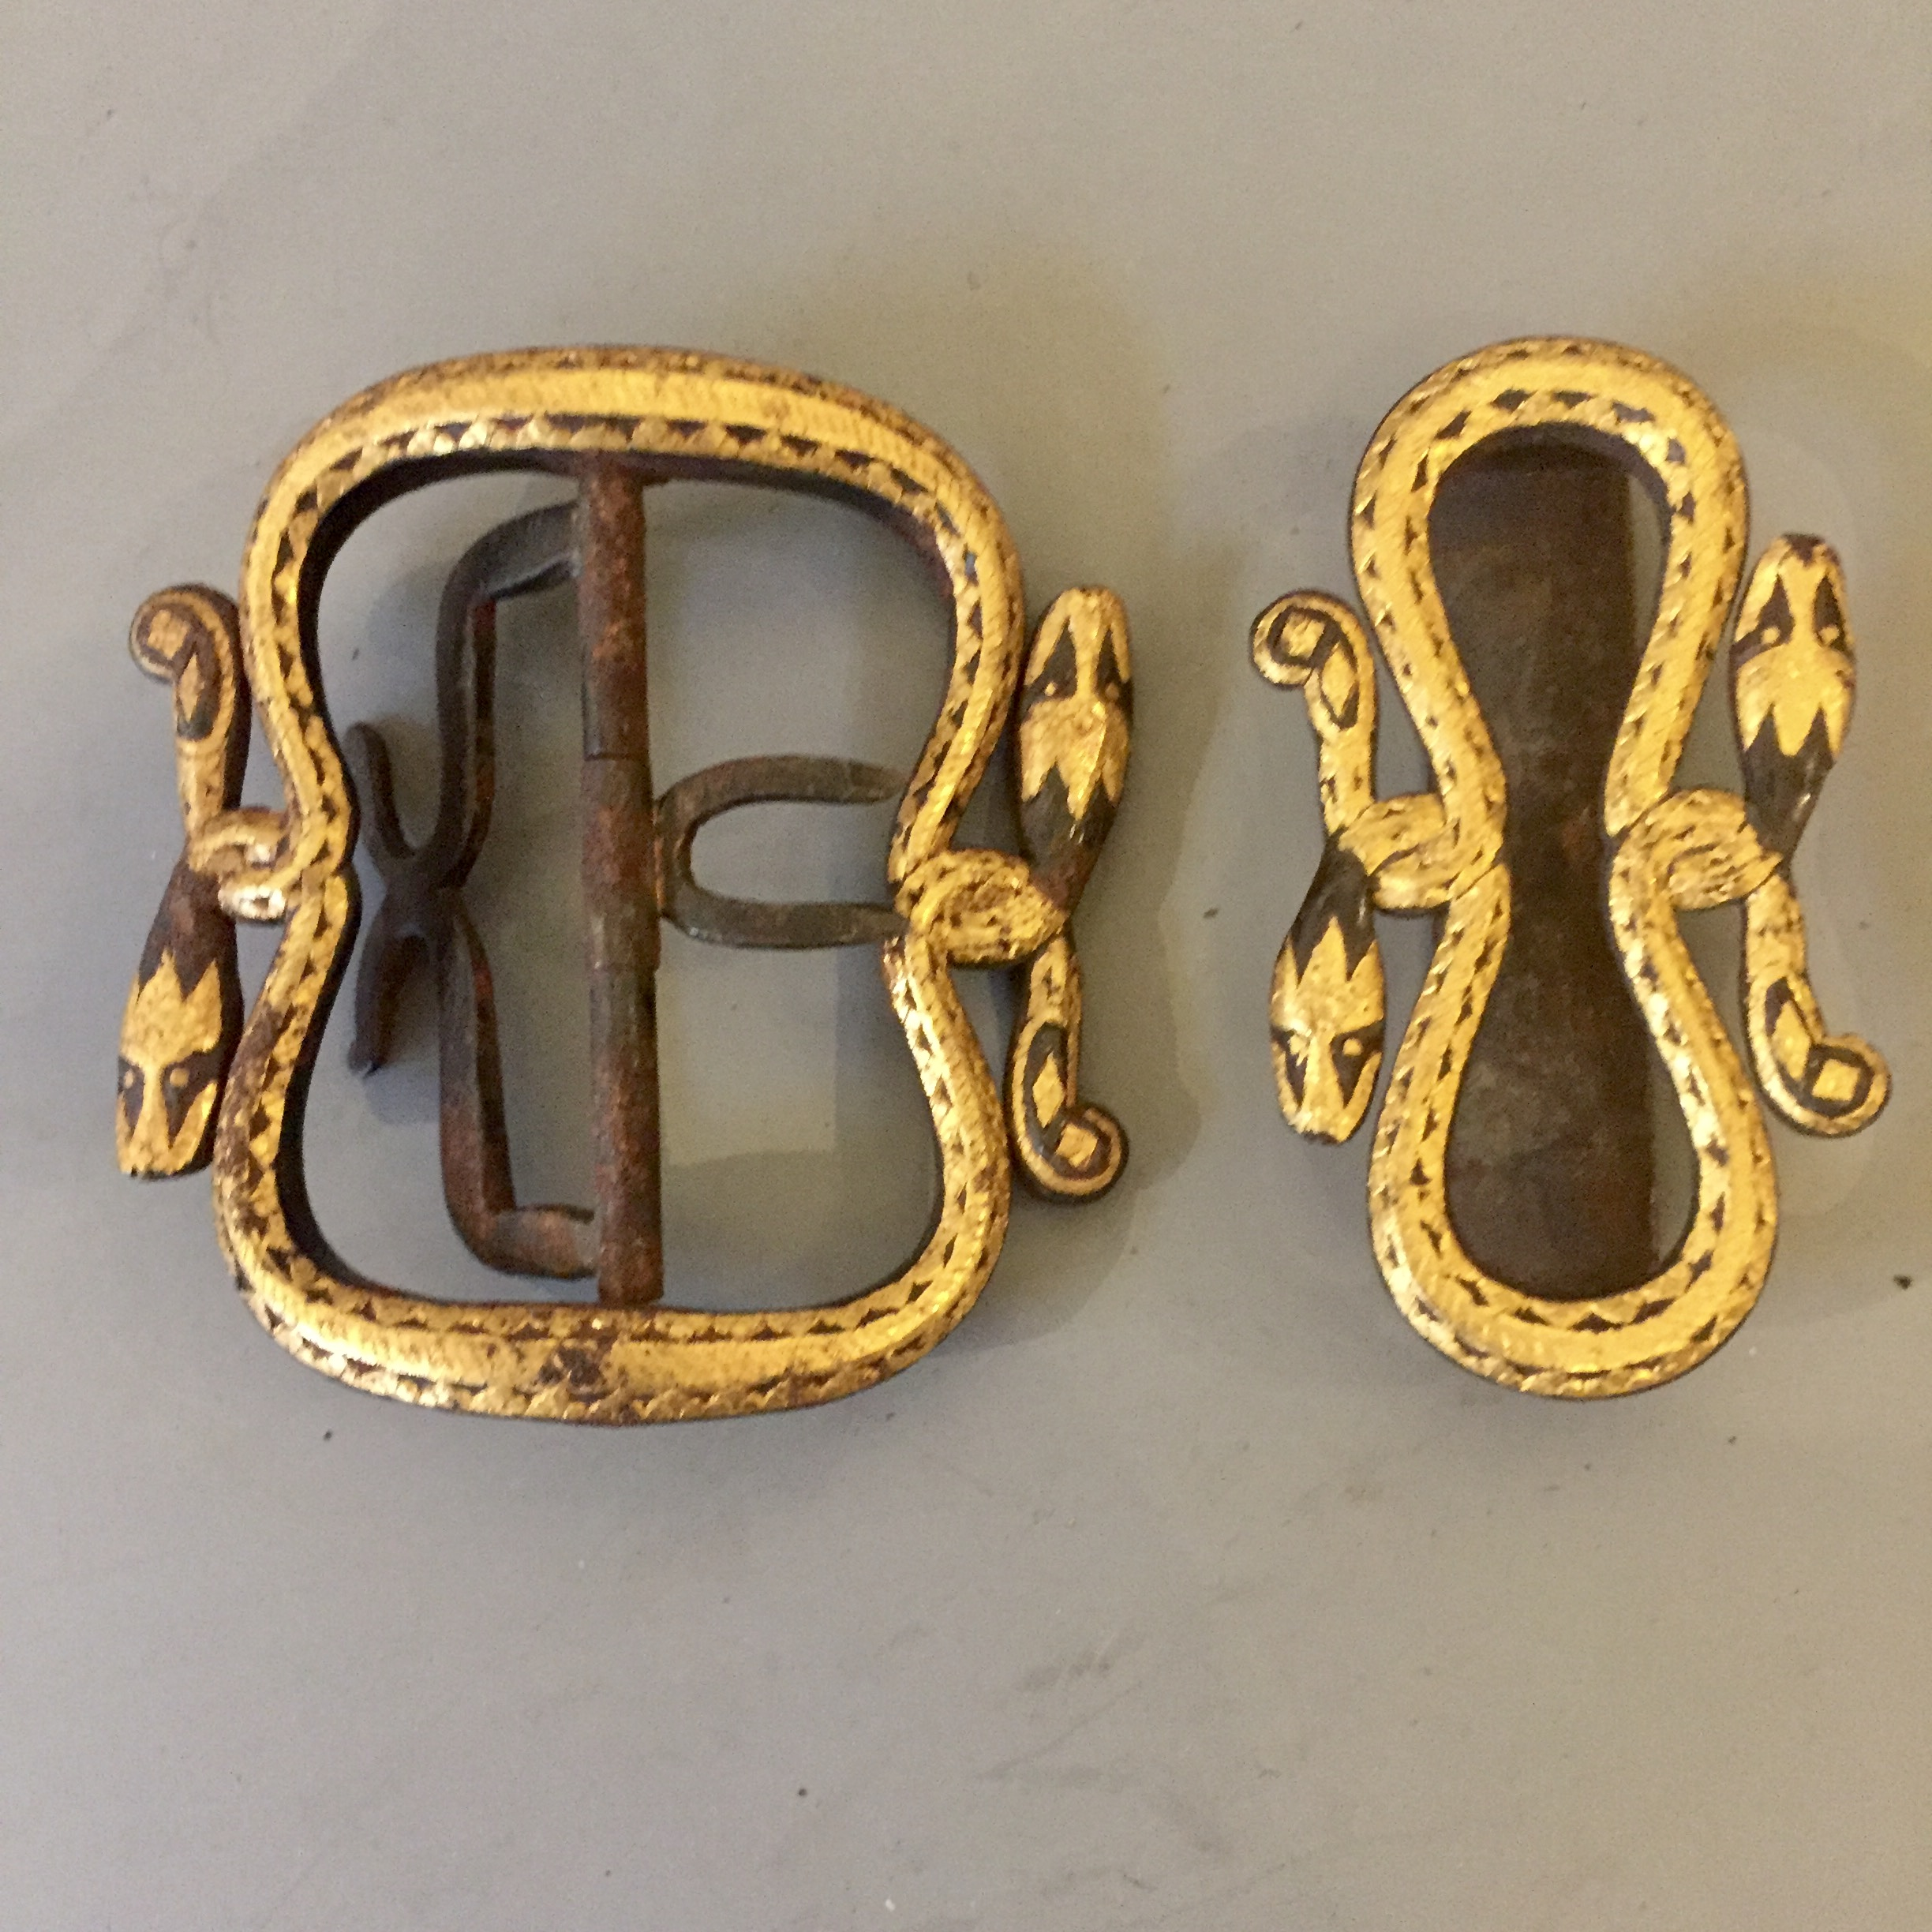 Antique Javanese golden Belt buckle and slid